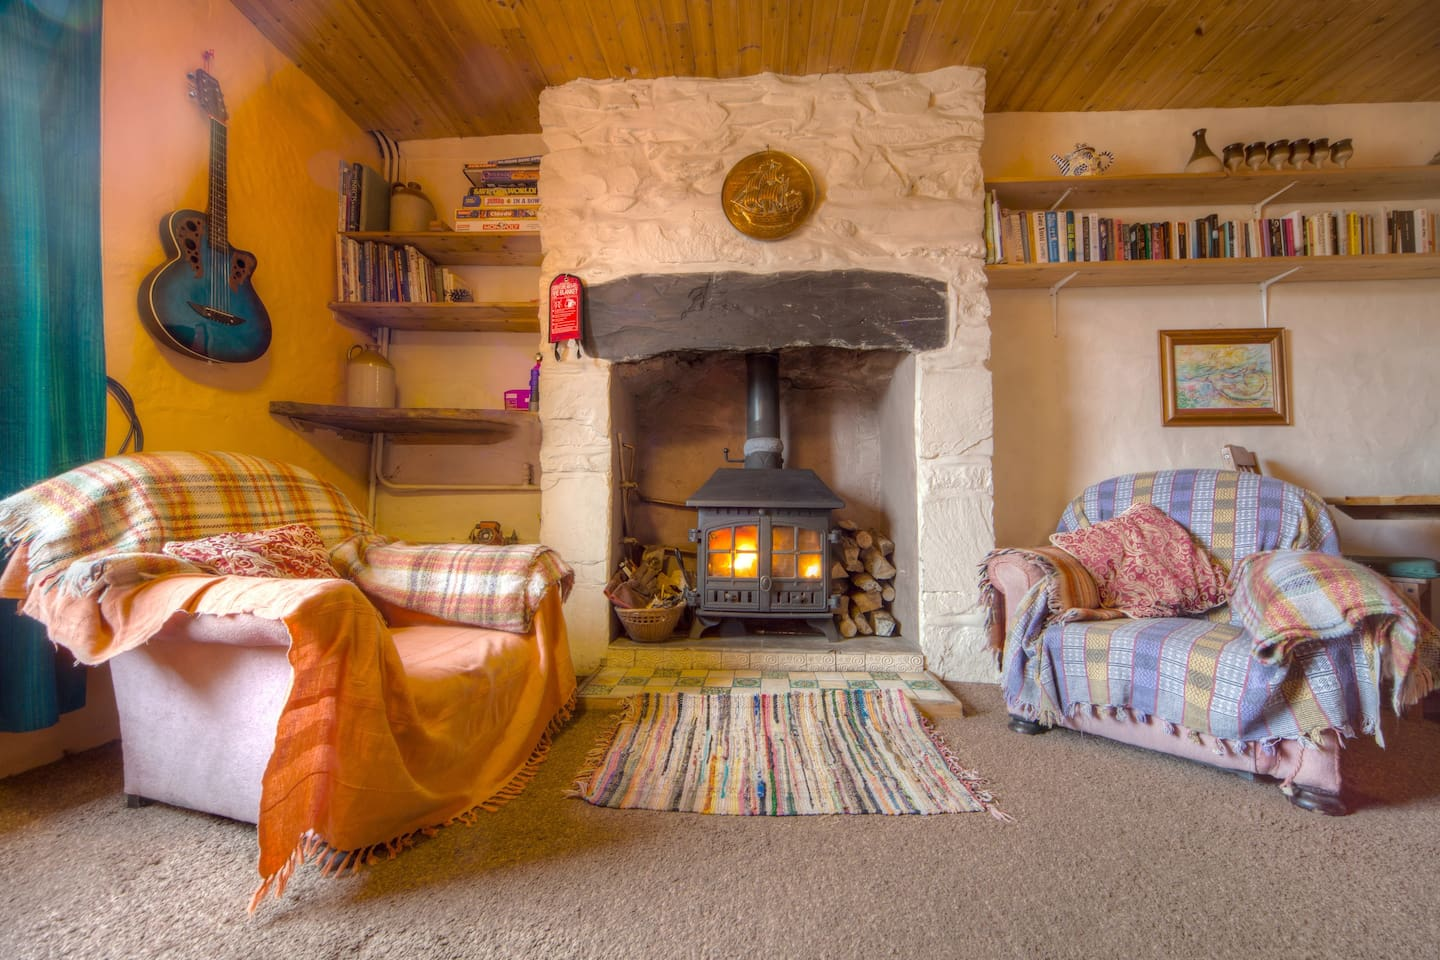 plenty of cushions and blankets for getting really snug when the wind is howling outside and you are back from a long walk in the mountains